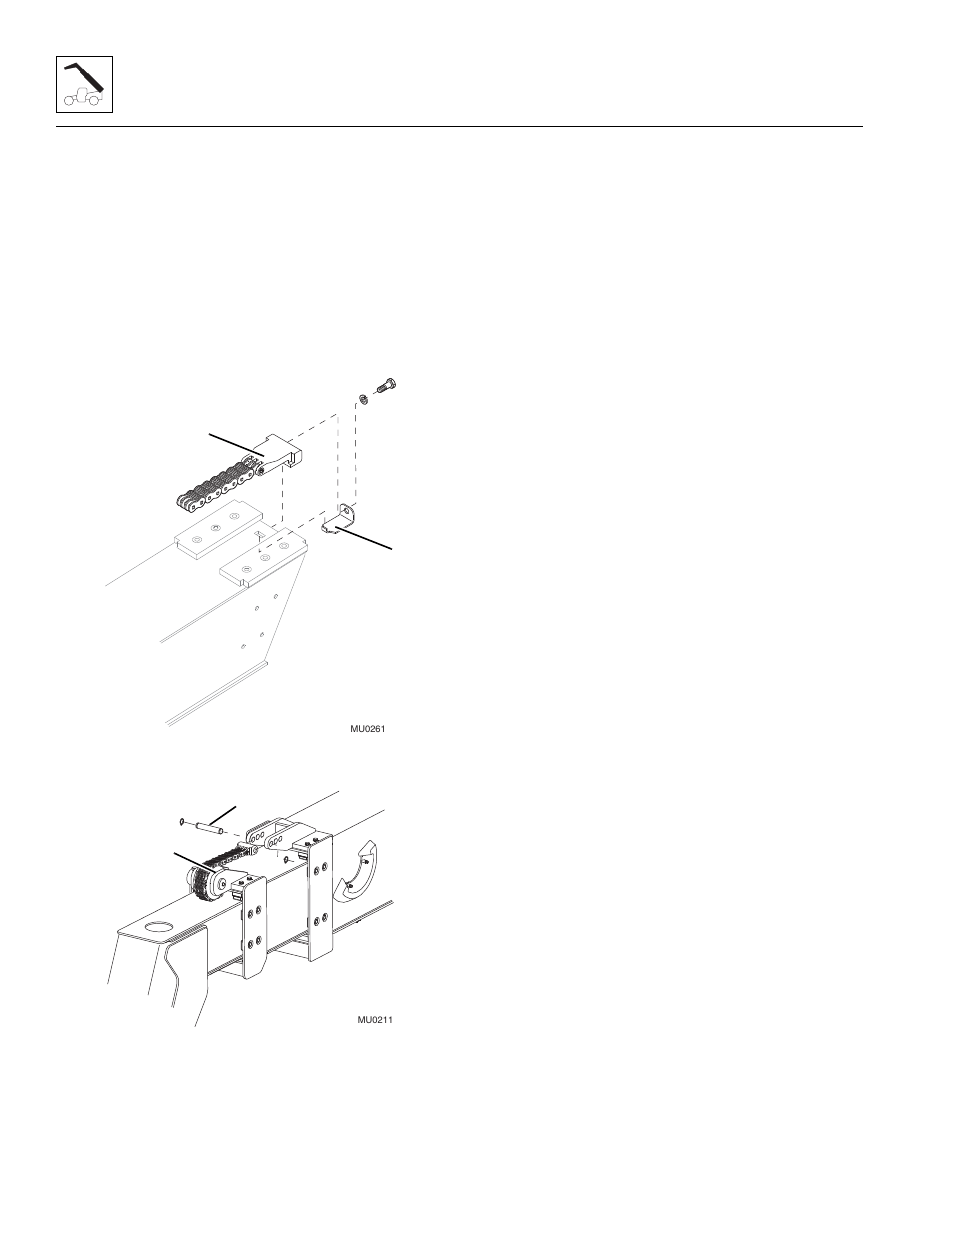 medium resolution of 7 extend chains removal and replacement 8 retract chain removal and replacement extend chains removal and replacement lull 944e 42 service manual user